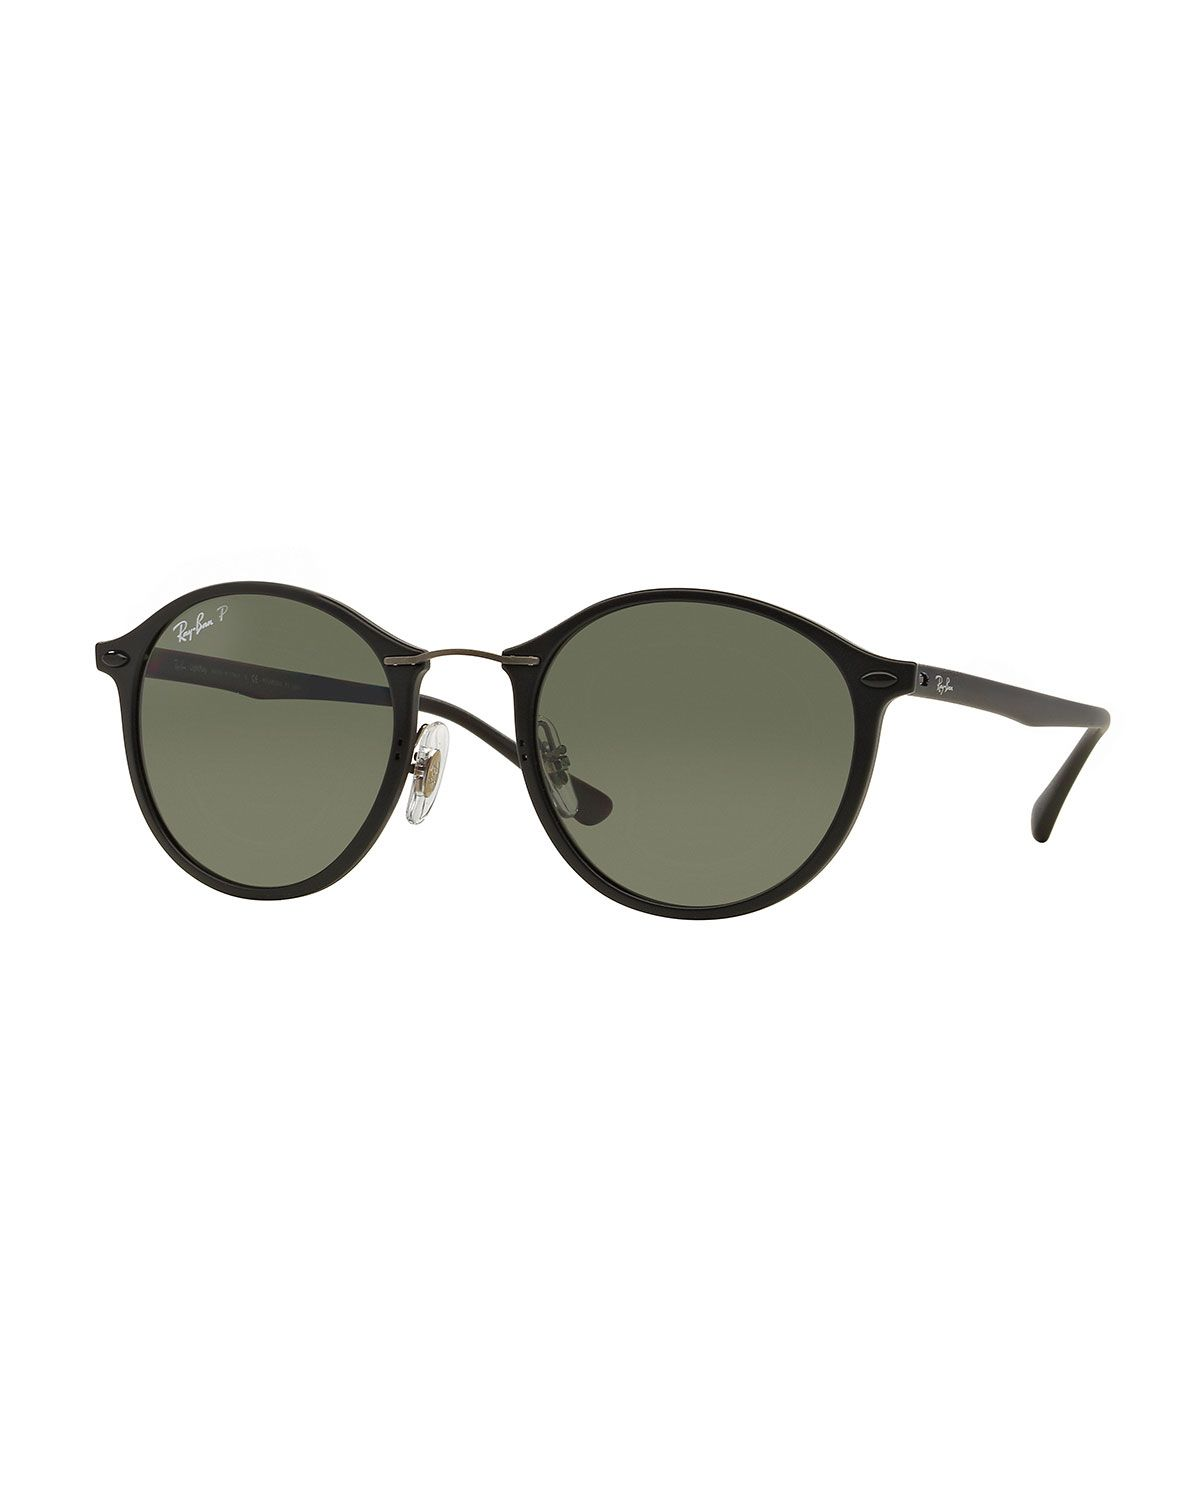 fa9ec24a0a8 Ray-Ban classic round sunglasses. Plastic frames with metal wire nose bridge.  Solid tonal lenses. Silicone nosepieces for no-slip fit.